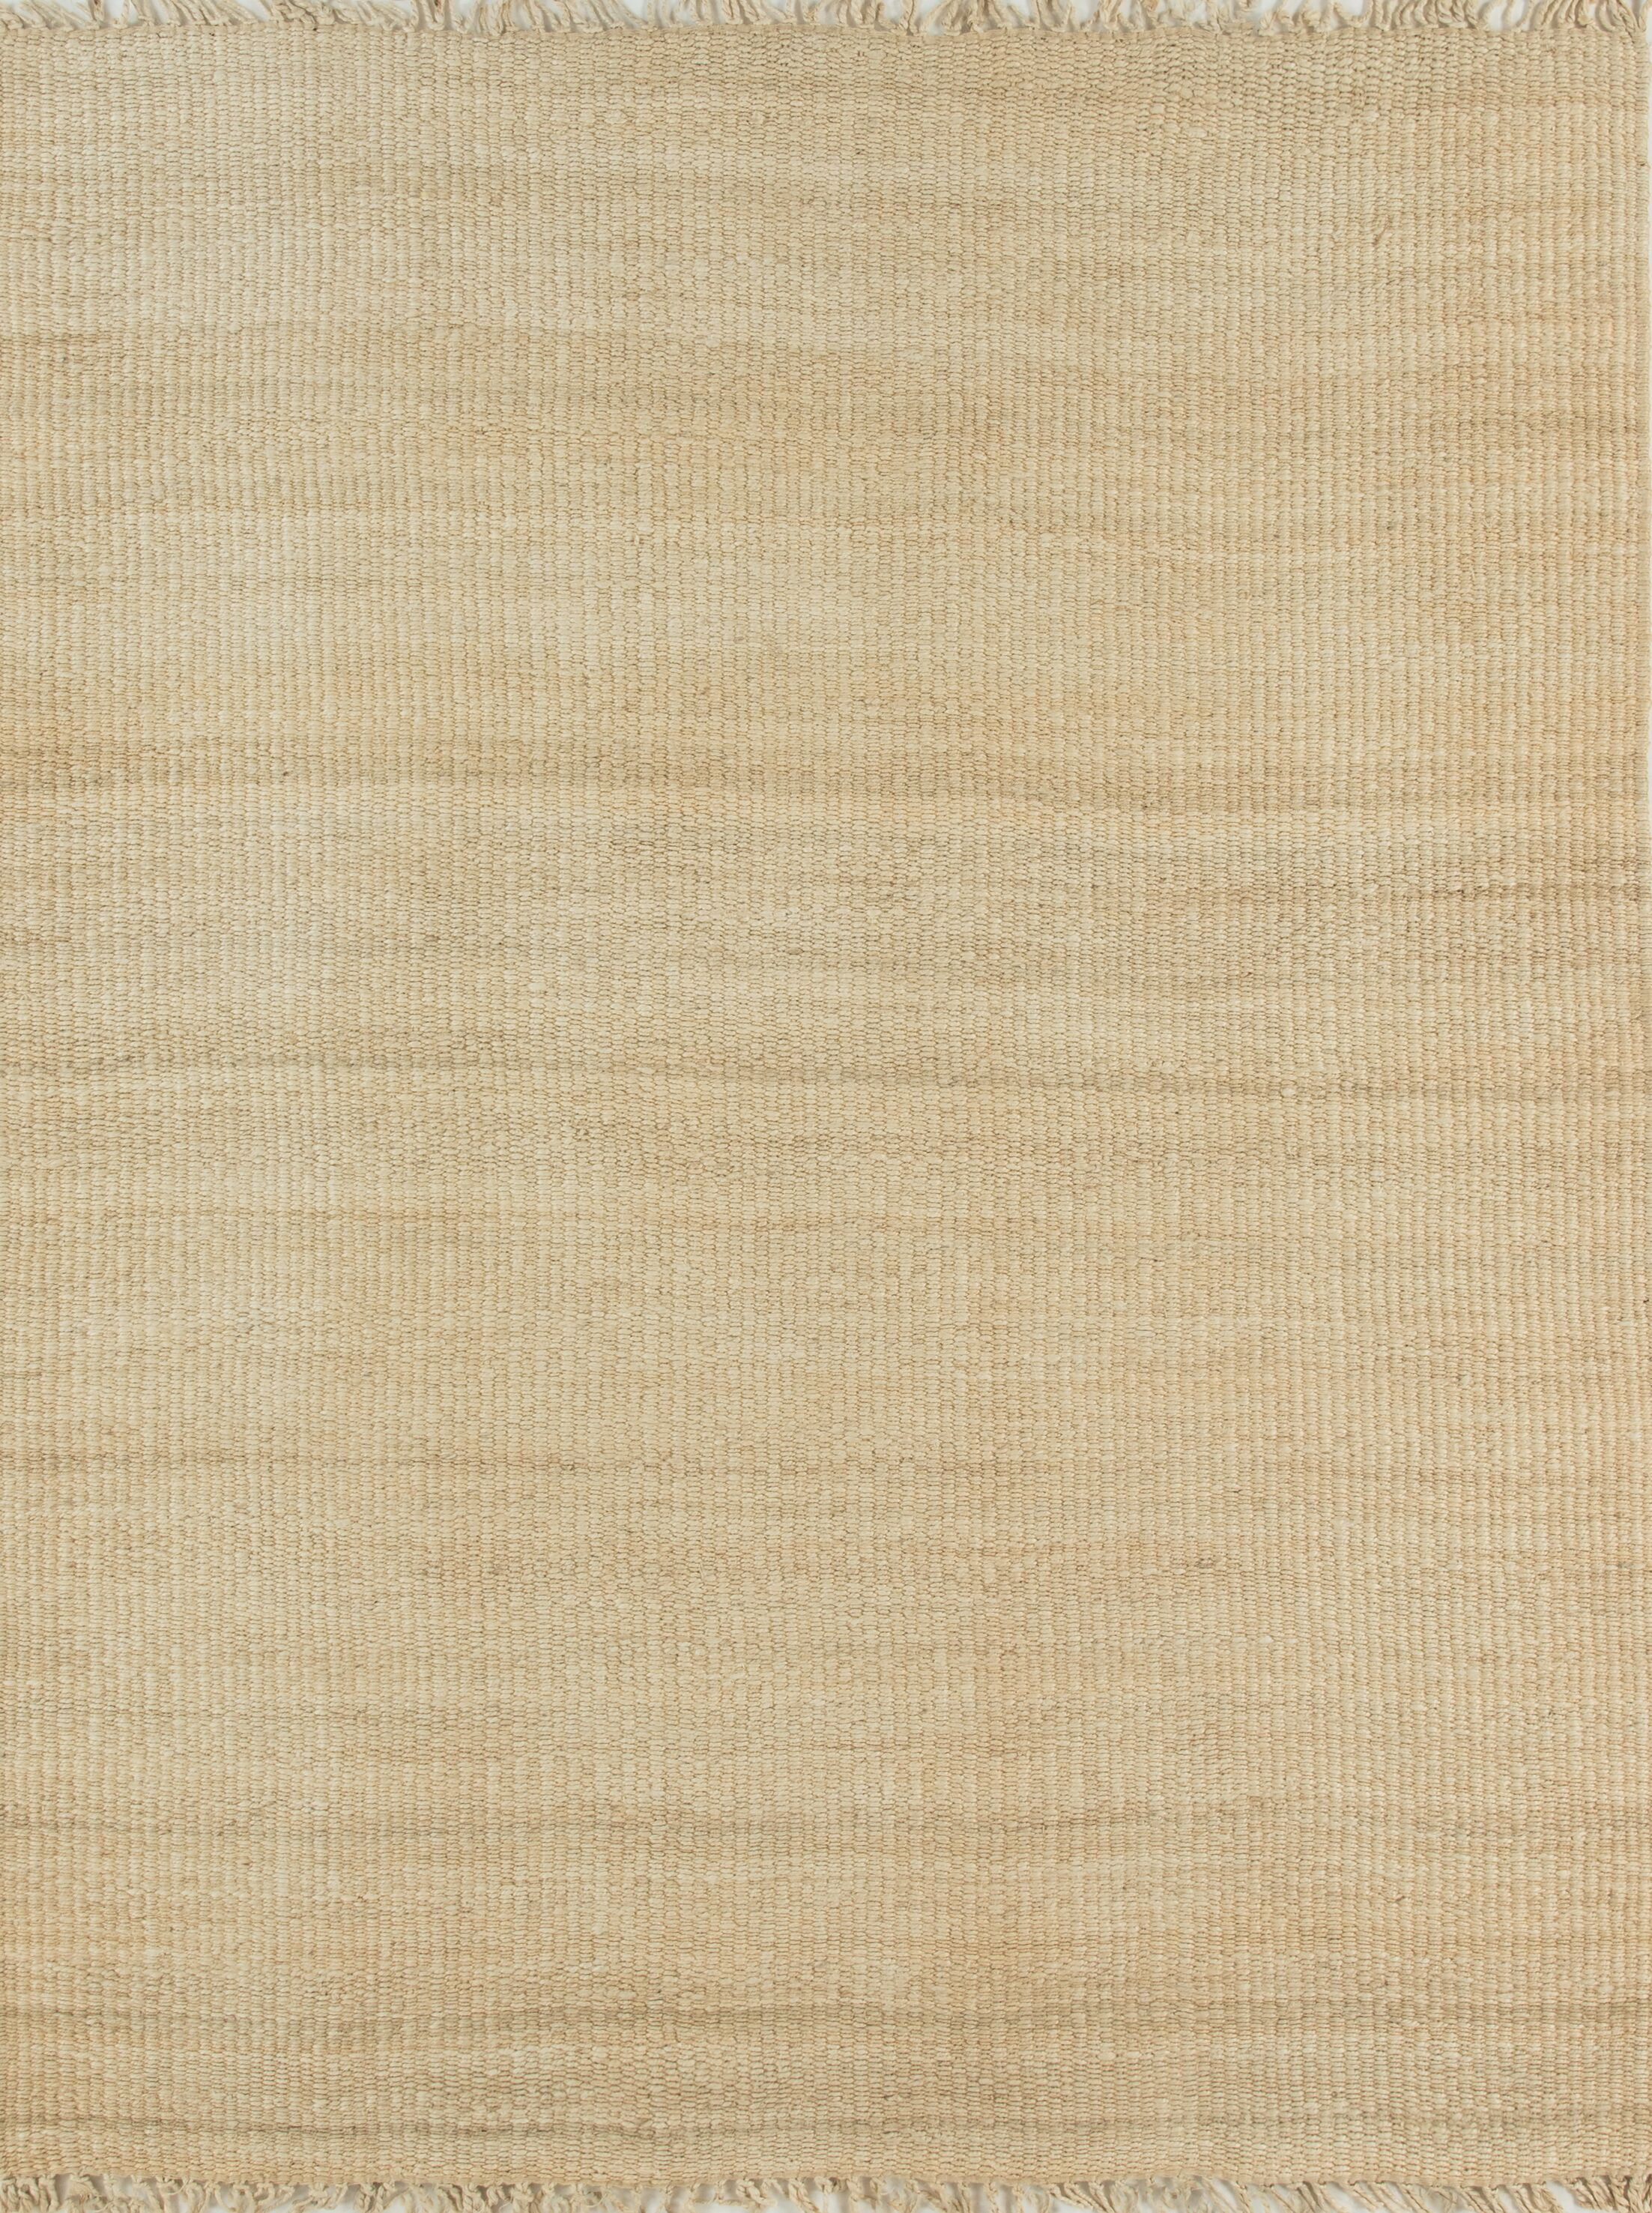 Hand-Woven Bleached Area Rug Rug Size: Rectangle 7'6